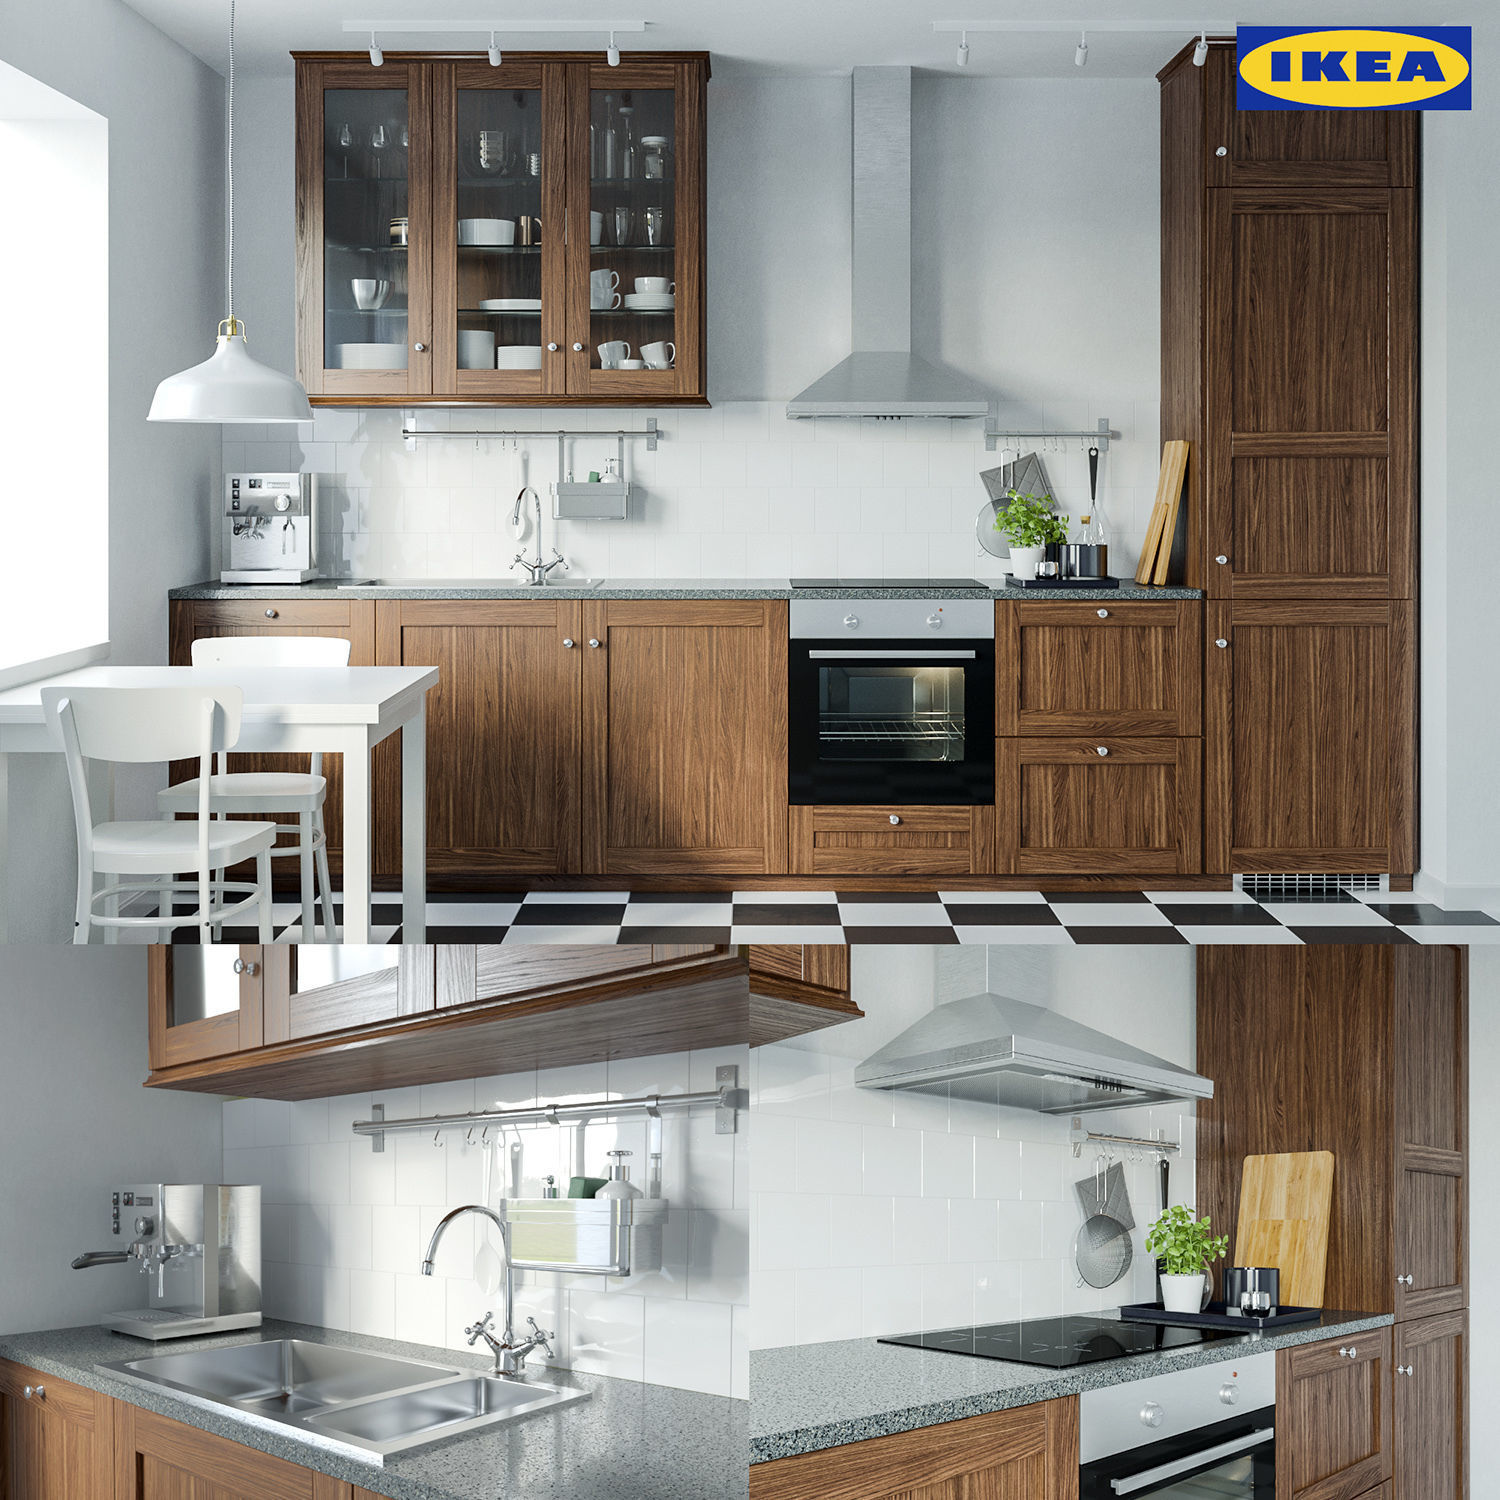 Ikea Edserum Kitchen Set 3d Model